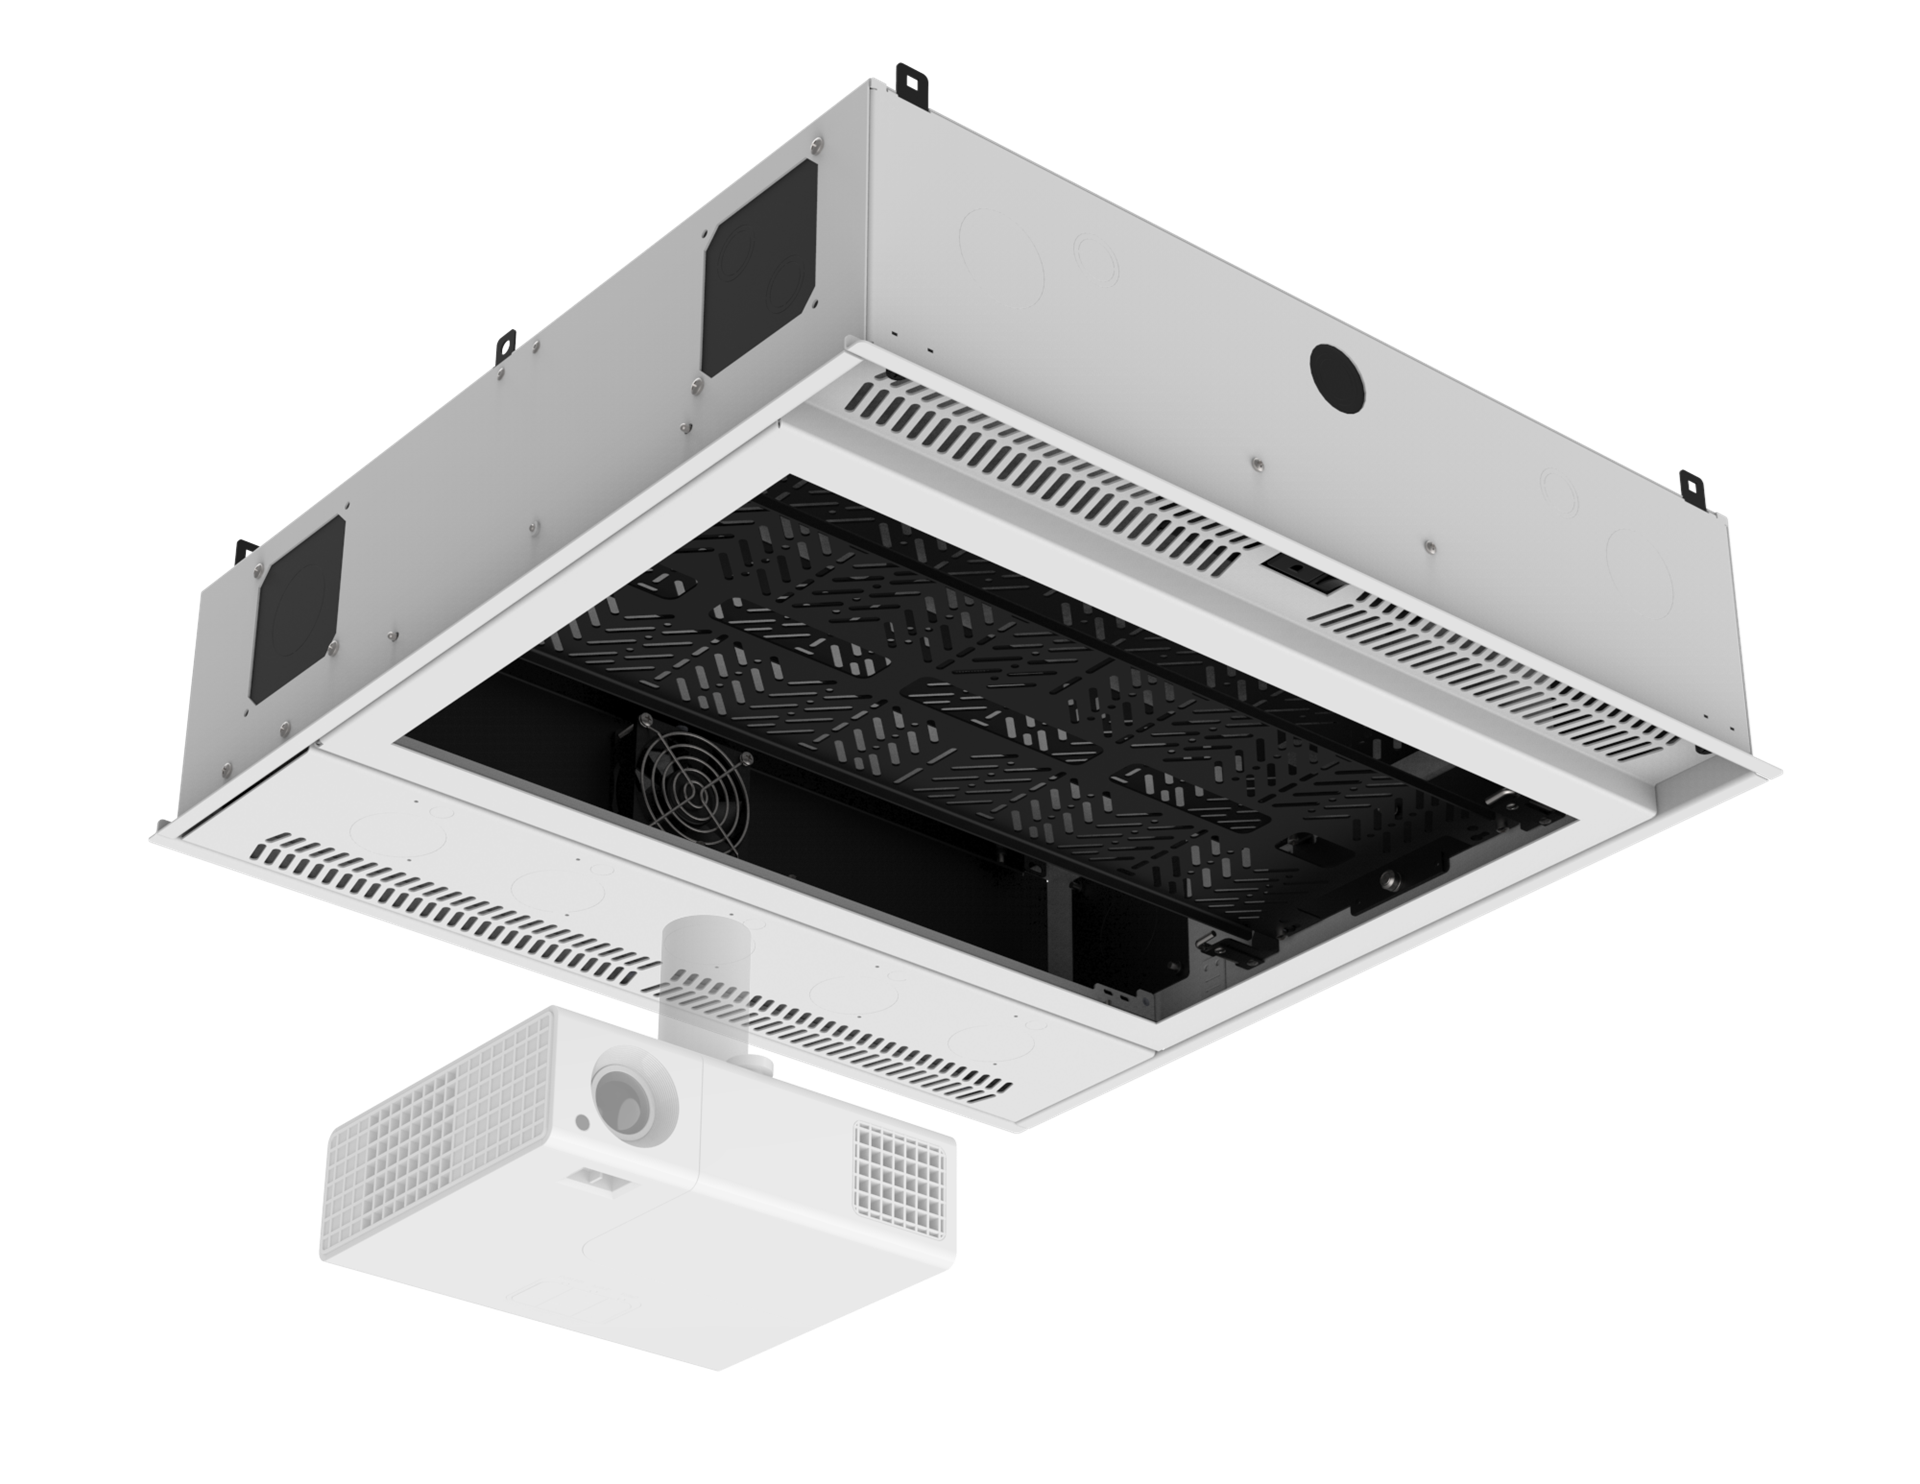 Picture Of 2 X Ceiling Mount Rack With 2ru